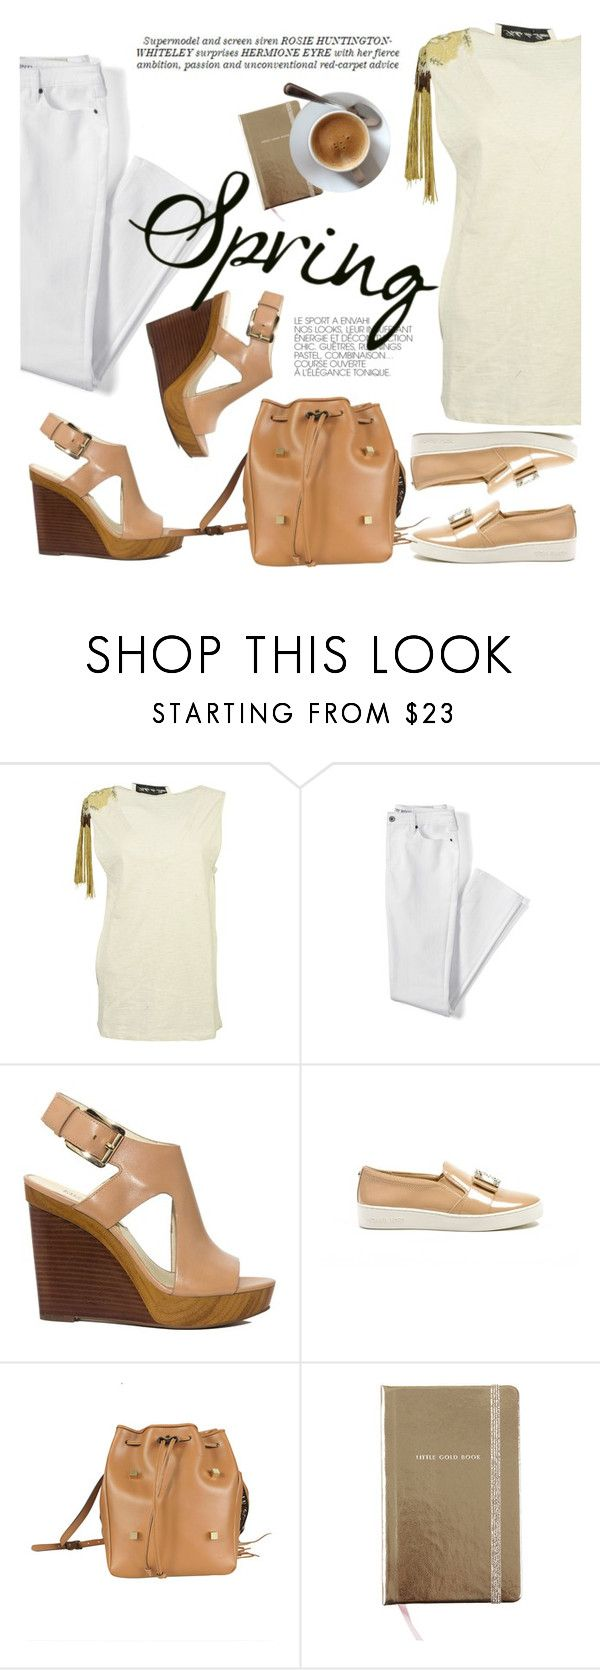 """""""Spring Day to Night"""" by italist ❤ liked on Polyvore featuring Soho de Luxe, Lands' End, Michael Kors, Manurina, Whiteley and Kate Spade"""